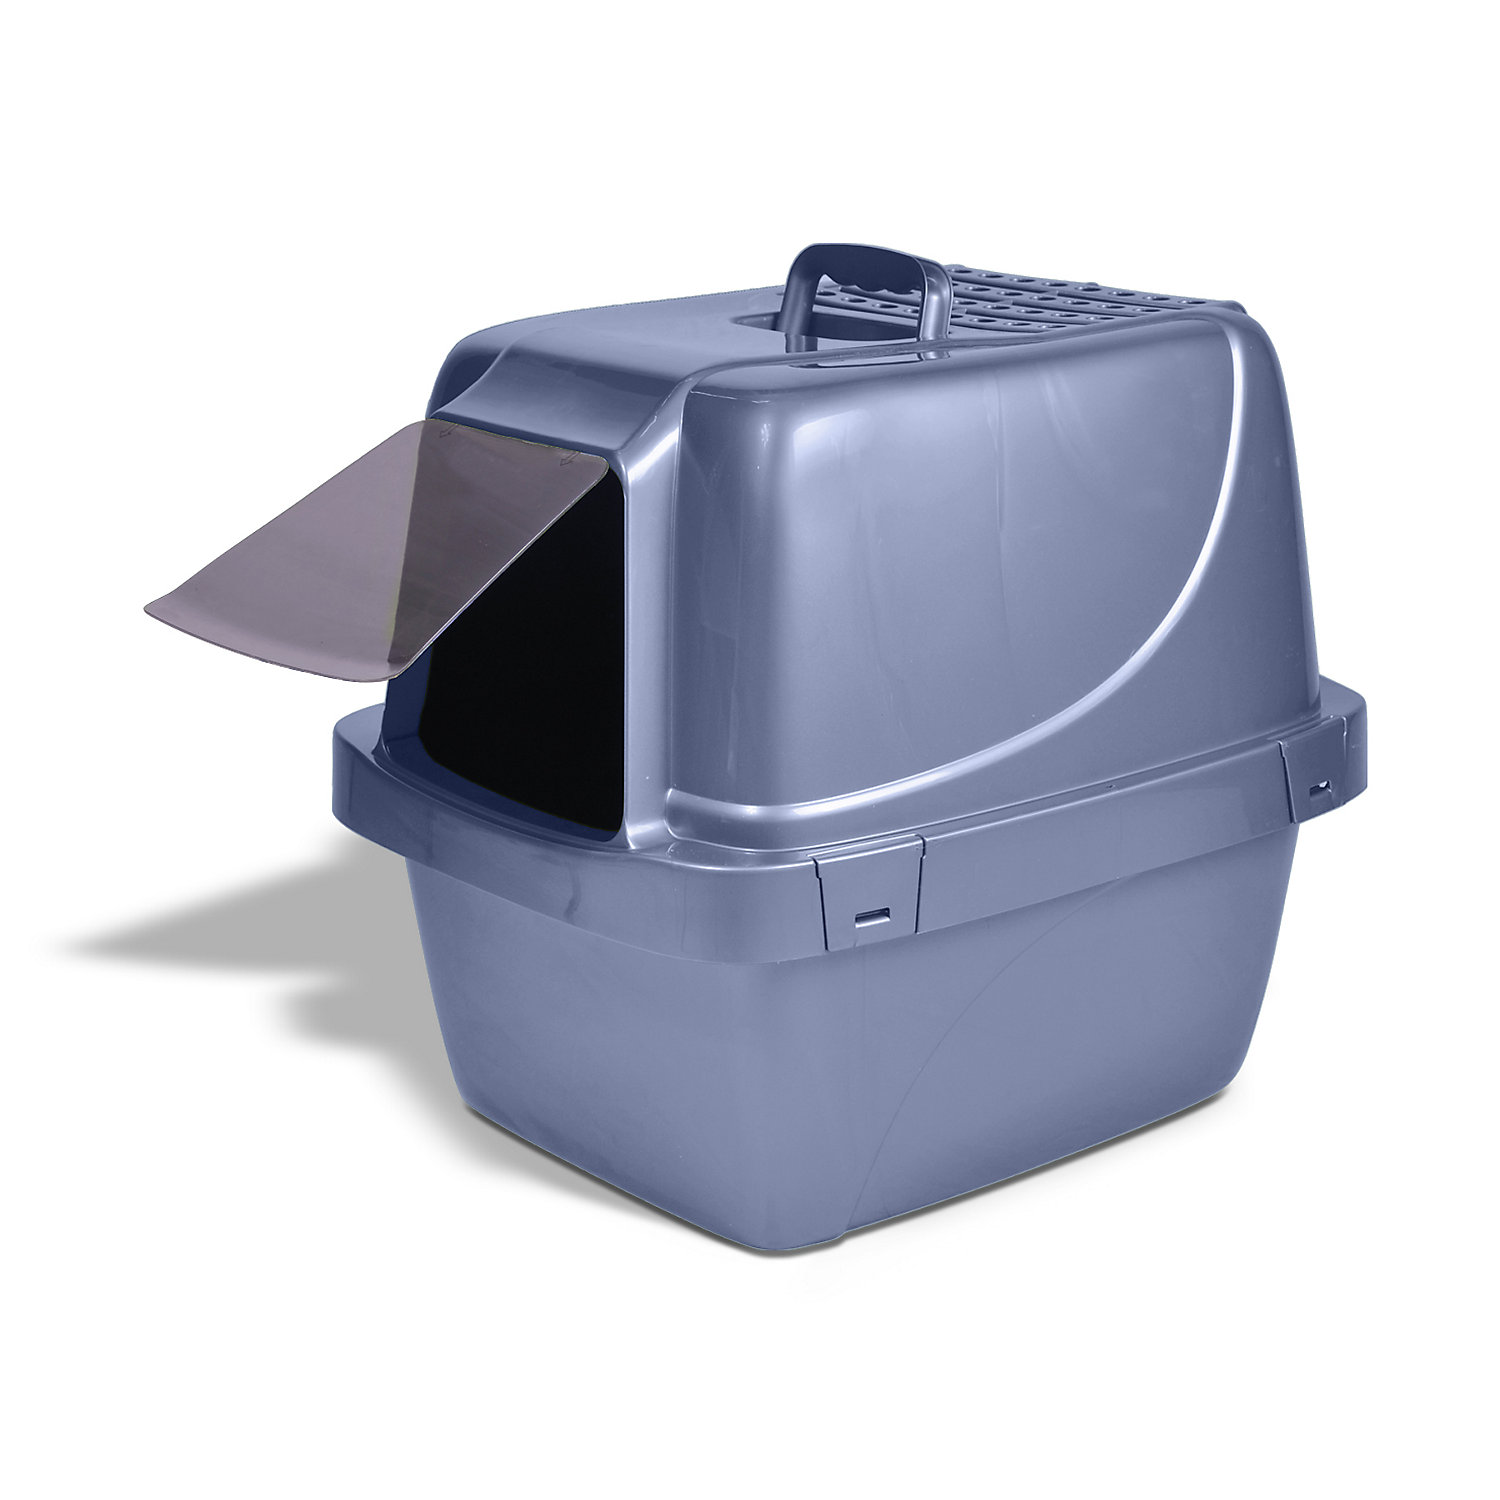 Van Ness Sifting Enclosed Cat Litter Pan 19.75 L X 15.25 W X 18 H Large Assorted